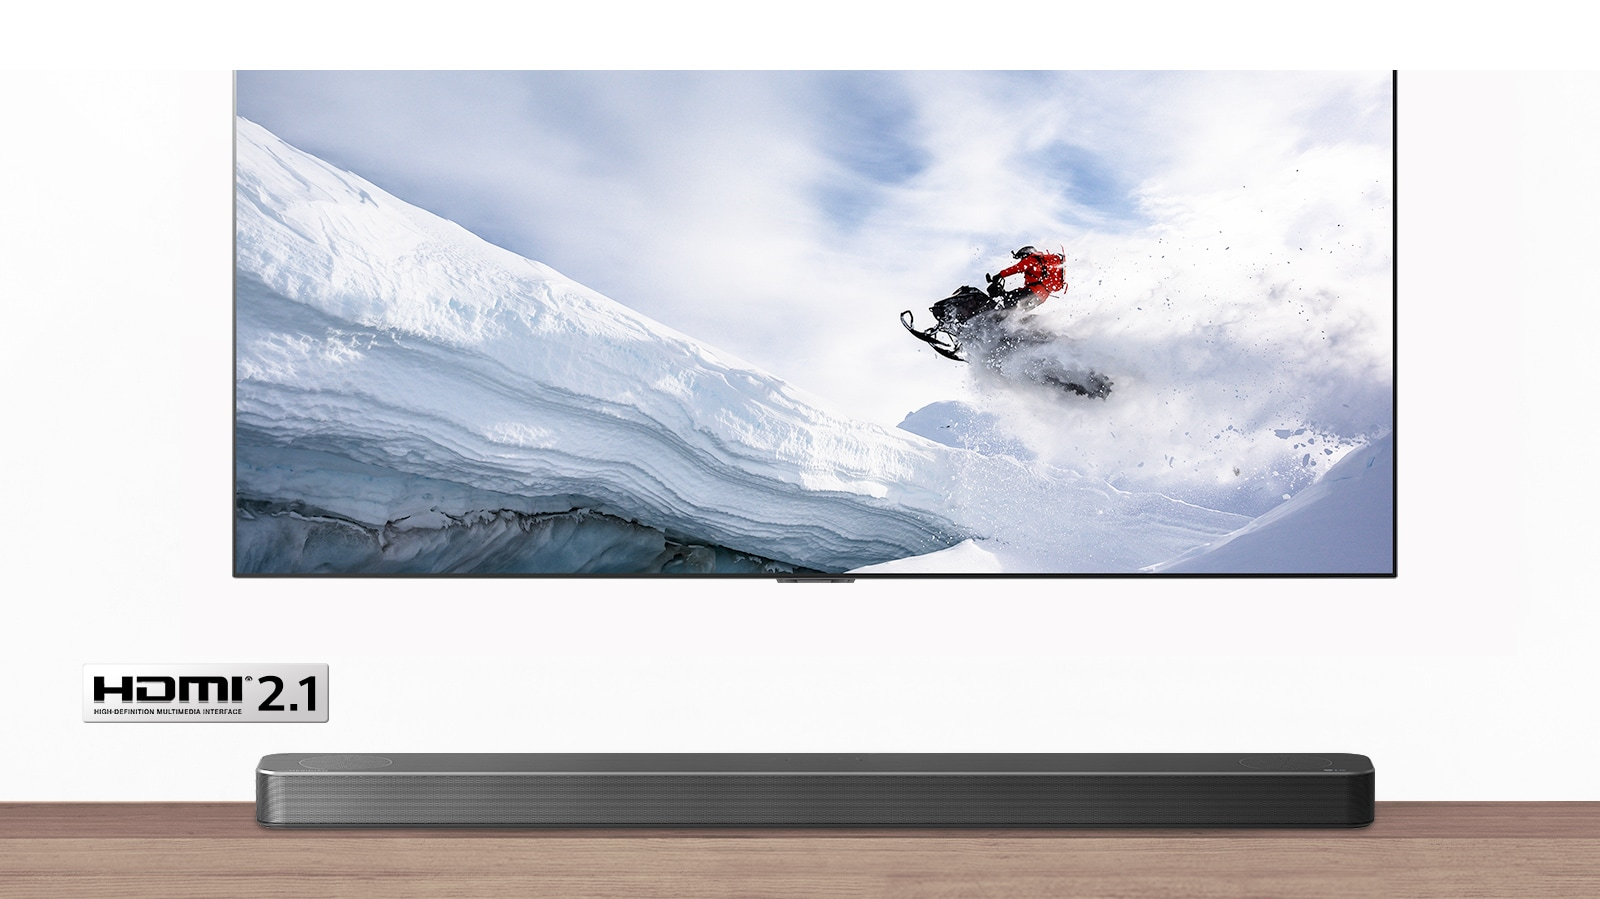 TV and Soundbar are seen from the front. TV shows man riding snowmobile in the snowy mountains. HDMI 2.1 logo is below TV.